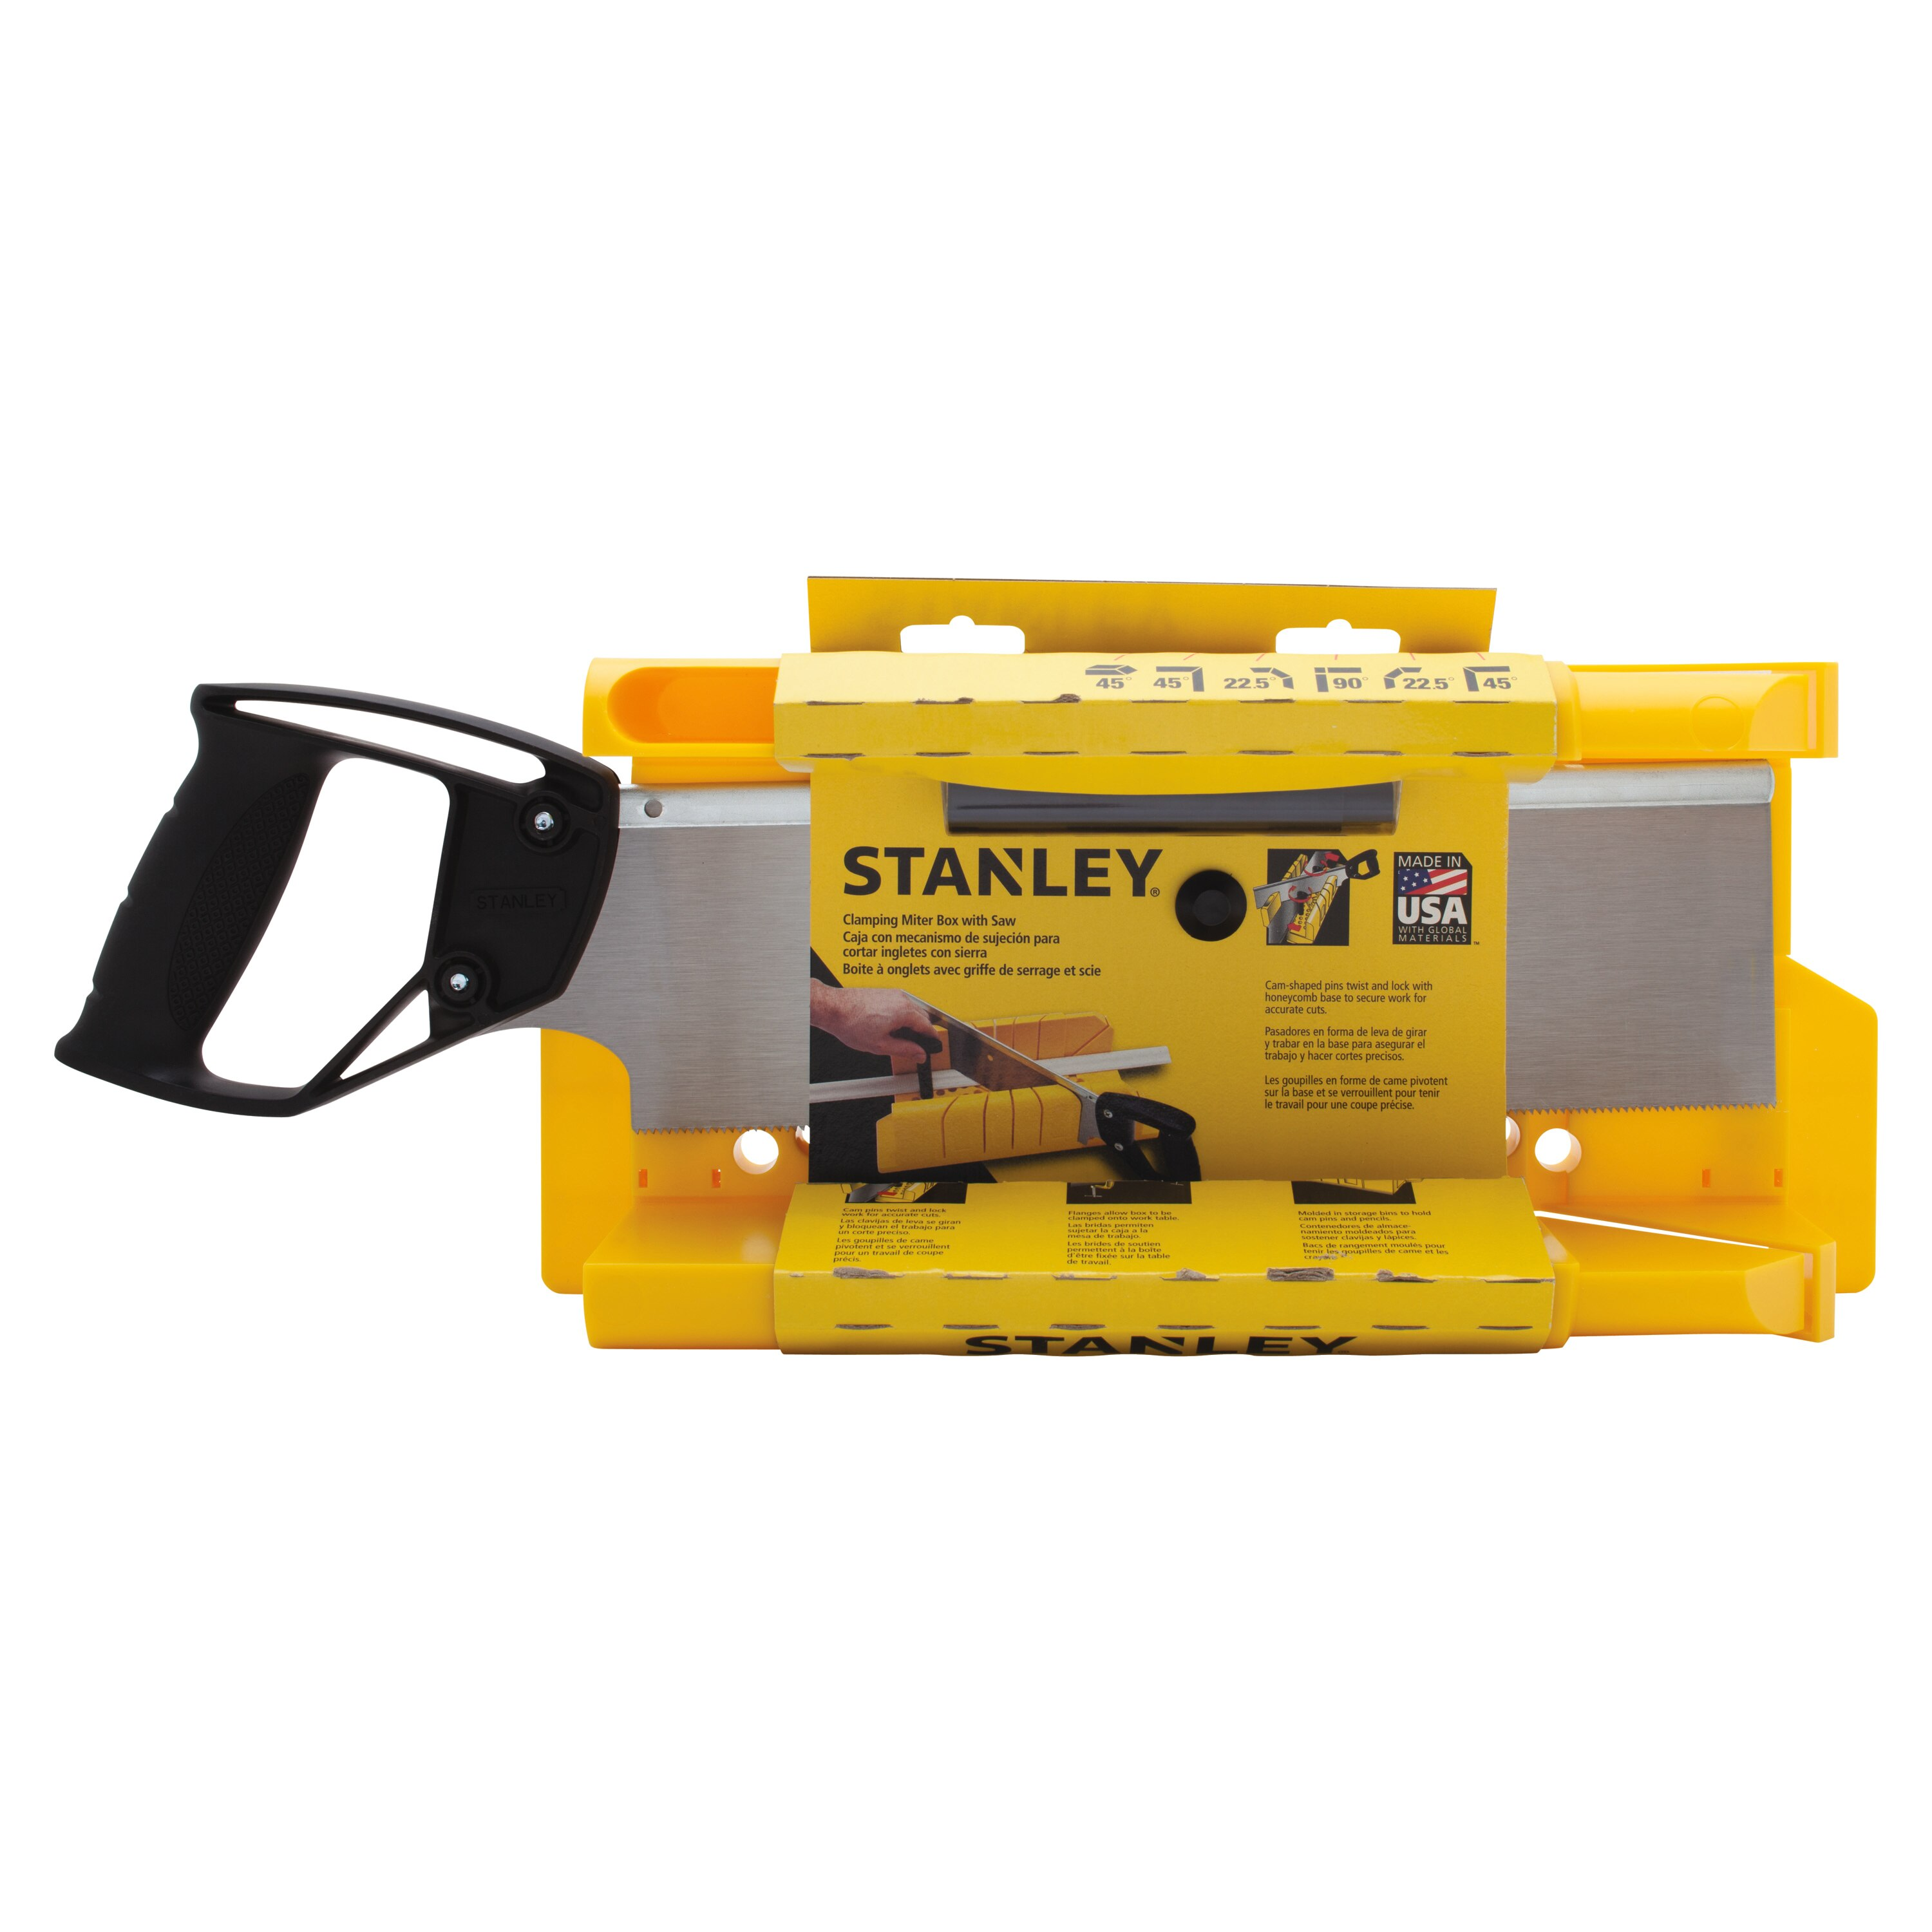 Stanley Tools - Clamping Miter Box with 14 in Saw - 20-600